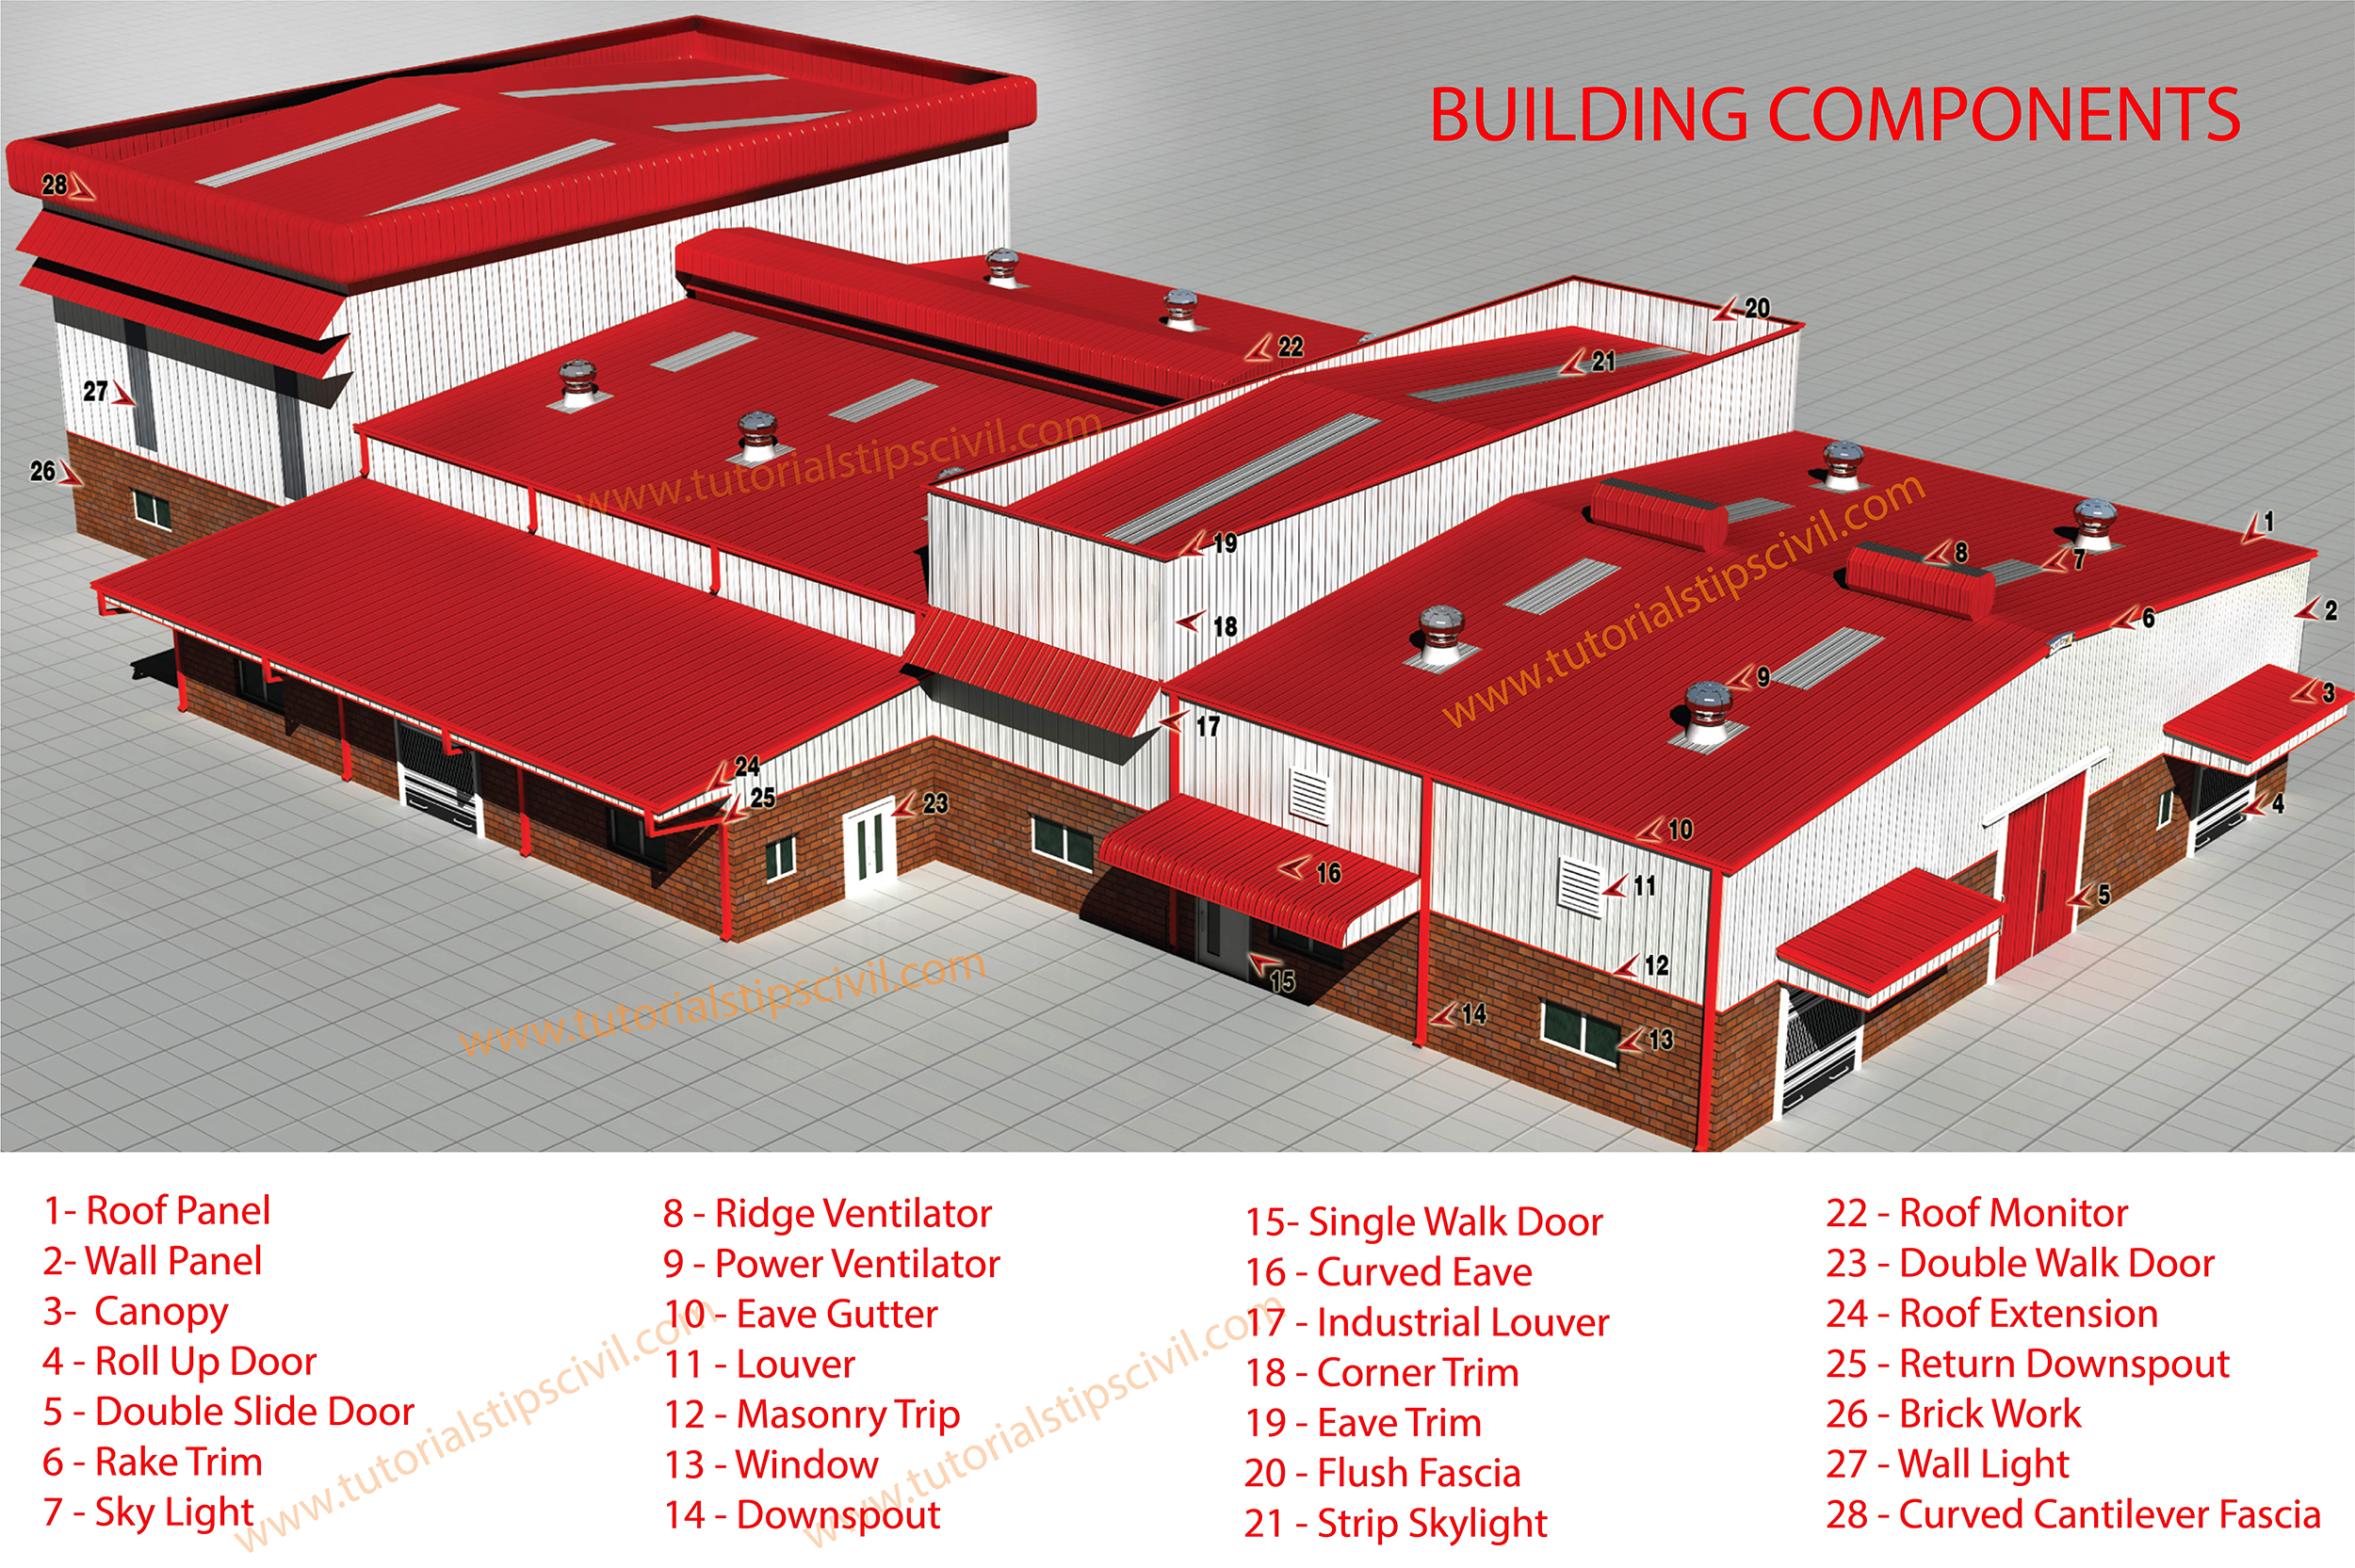 COMPONENTS OF PRE-ENGINEERED BUILDINGS (PEB)